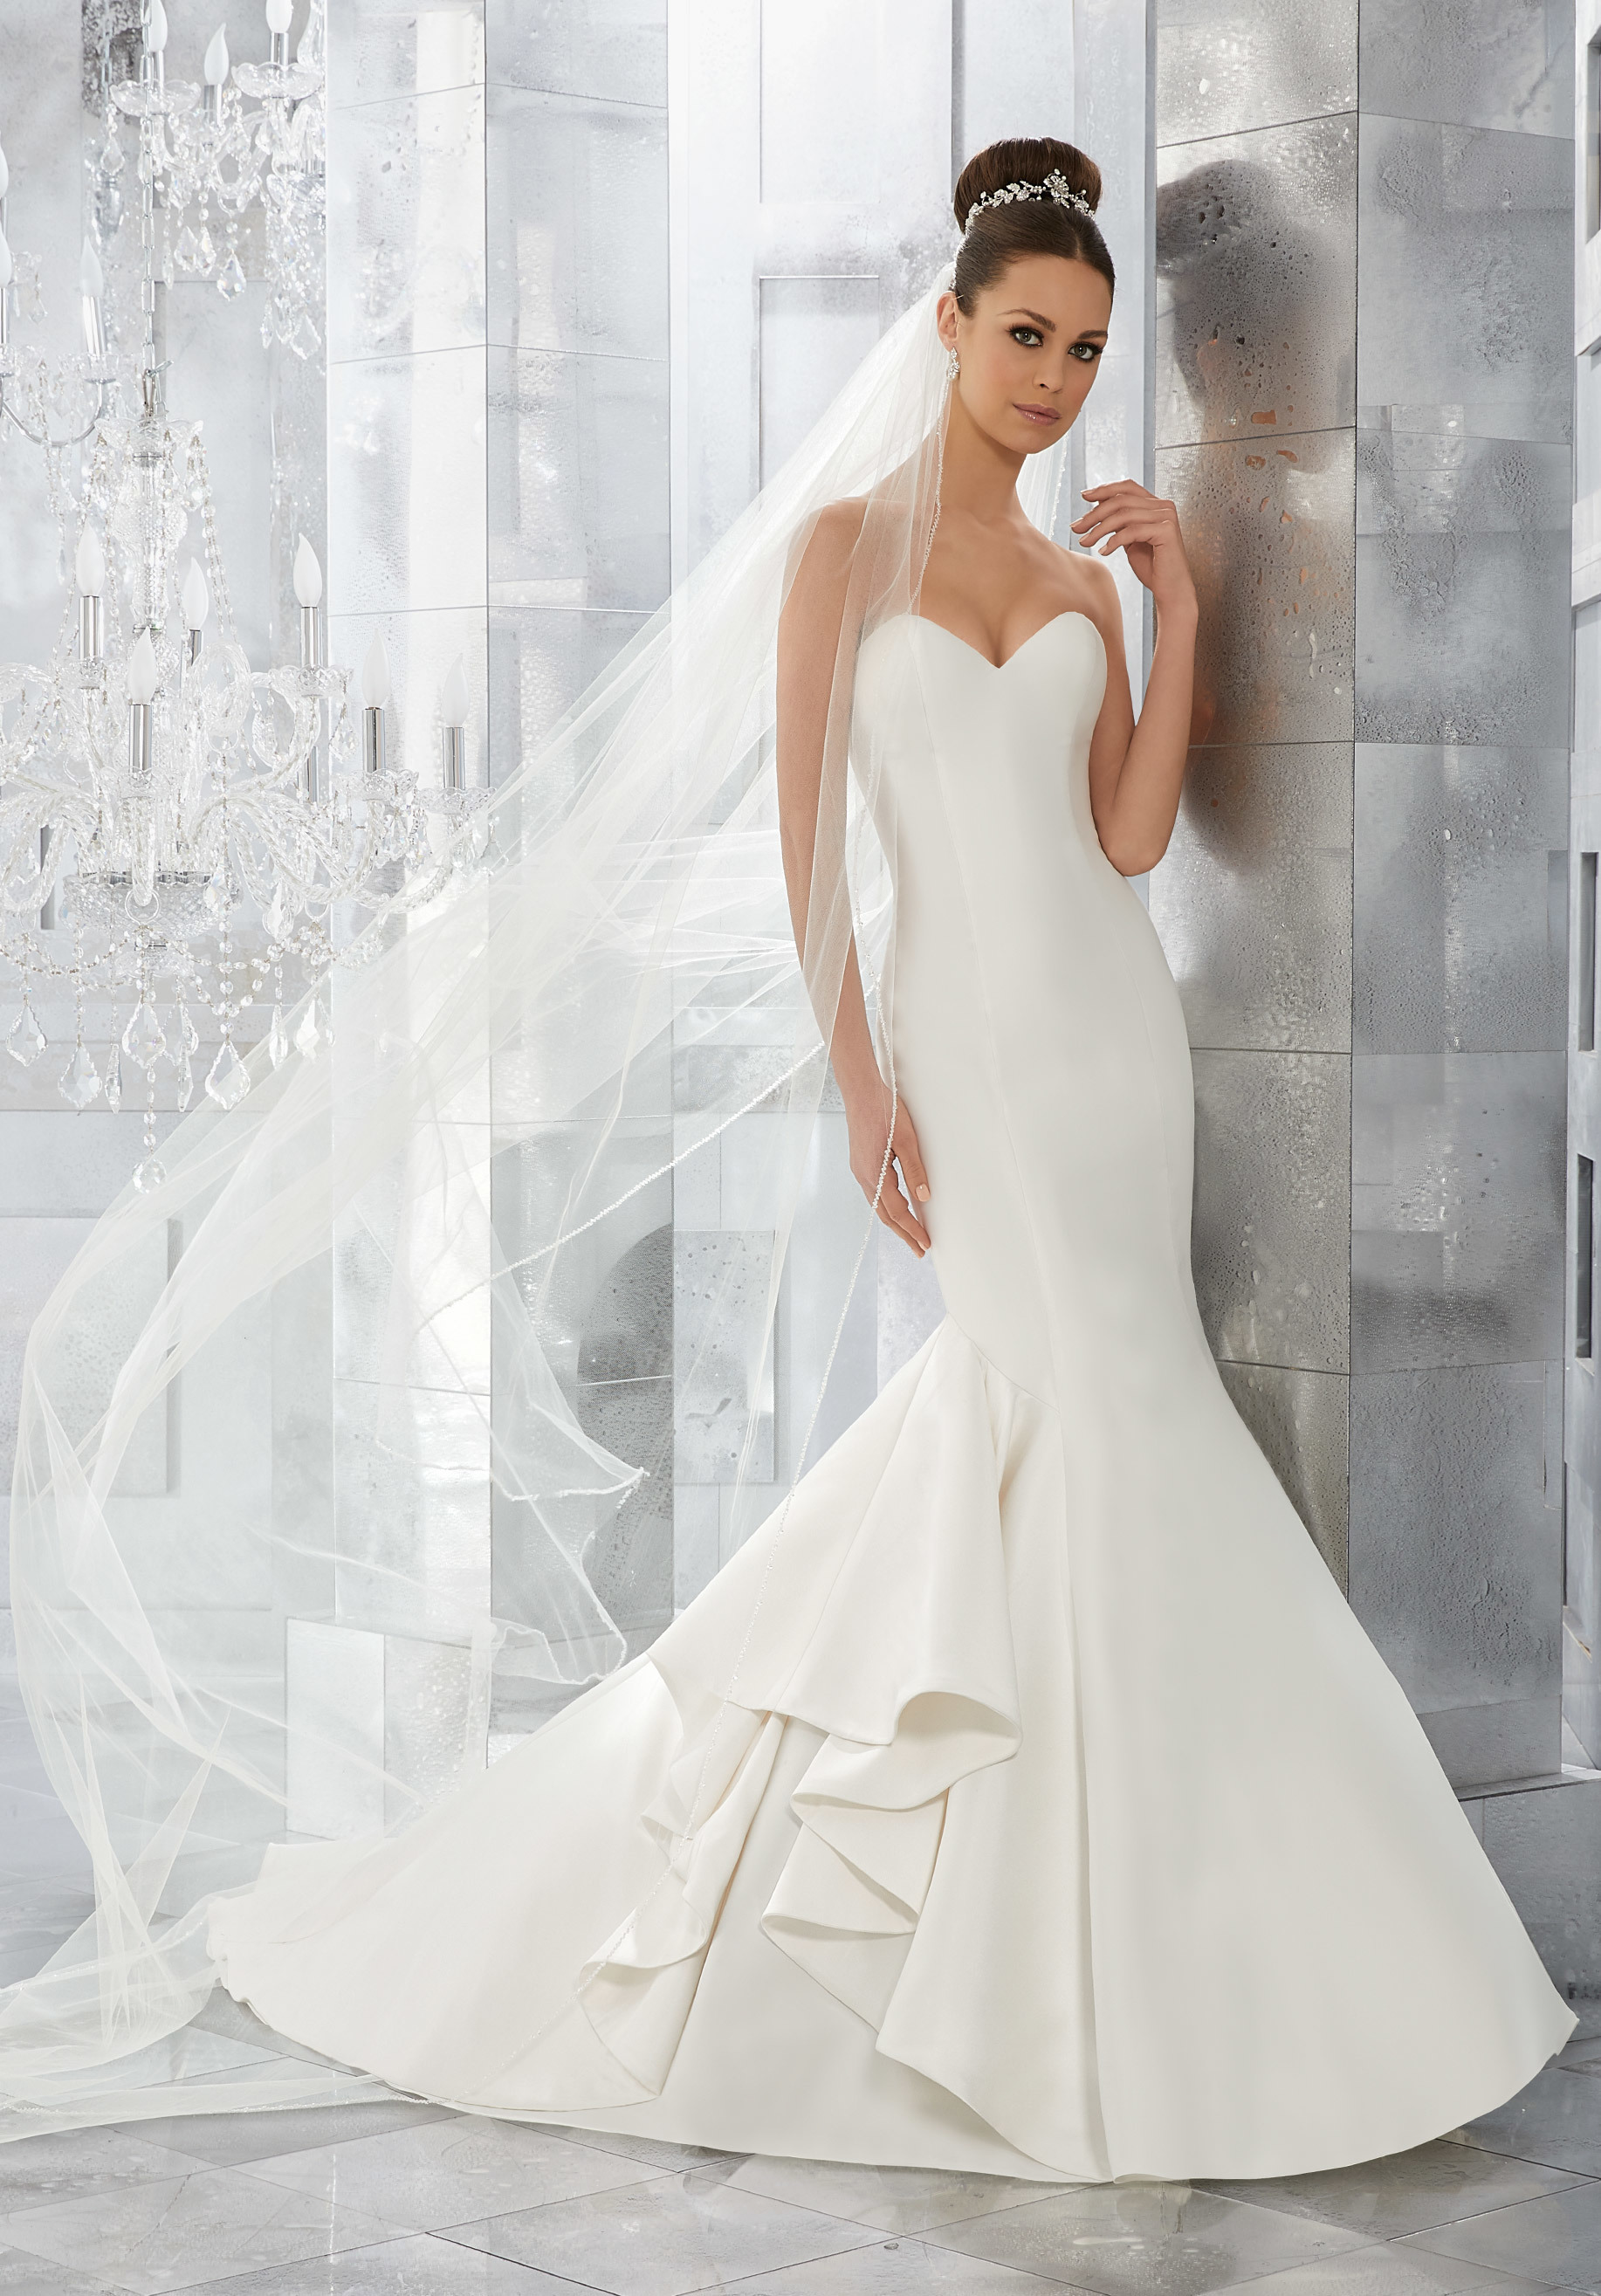 Mori lee - 5563 size 10 - $500 - (58% OFF)